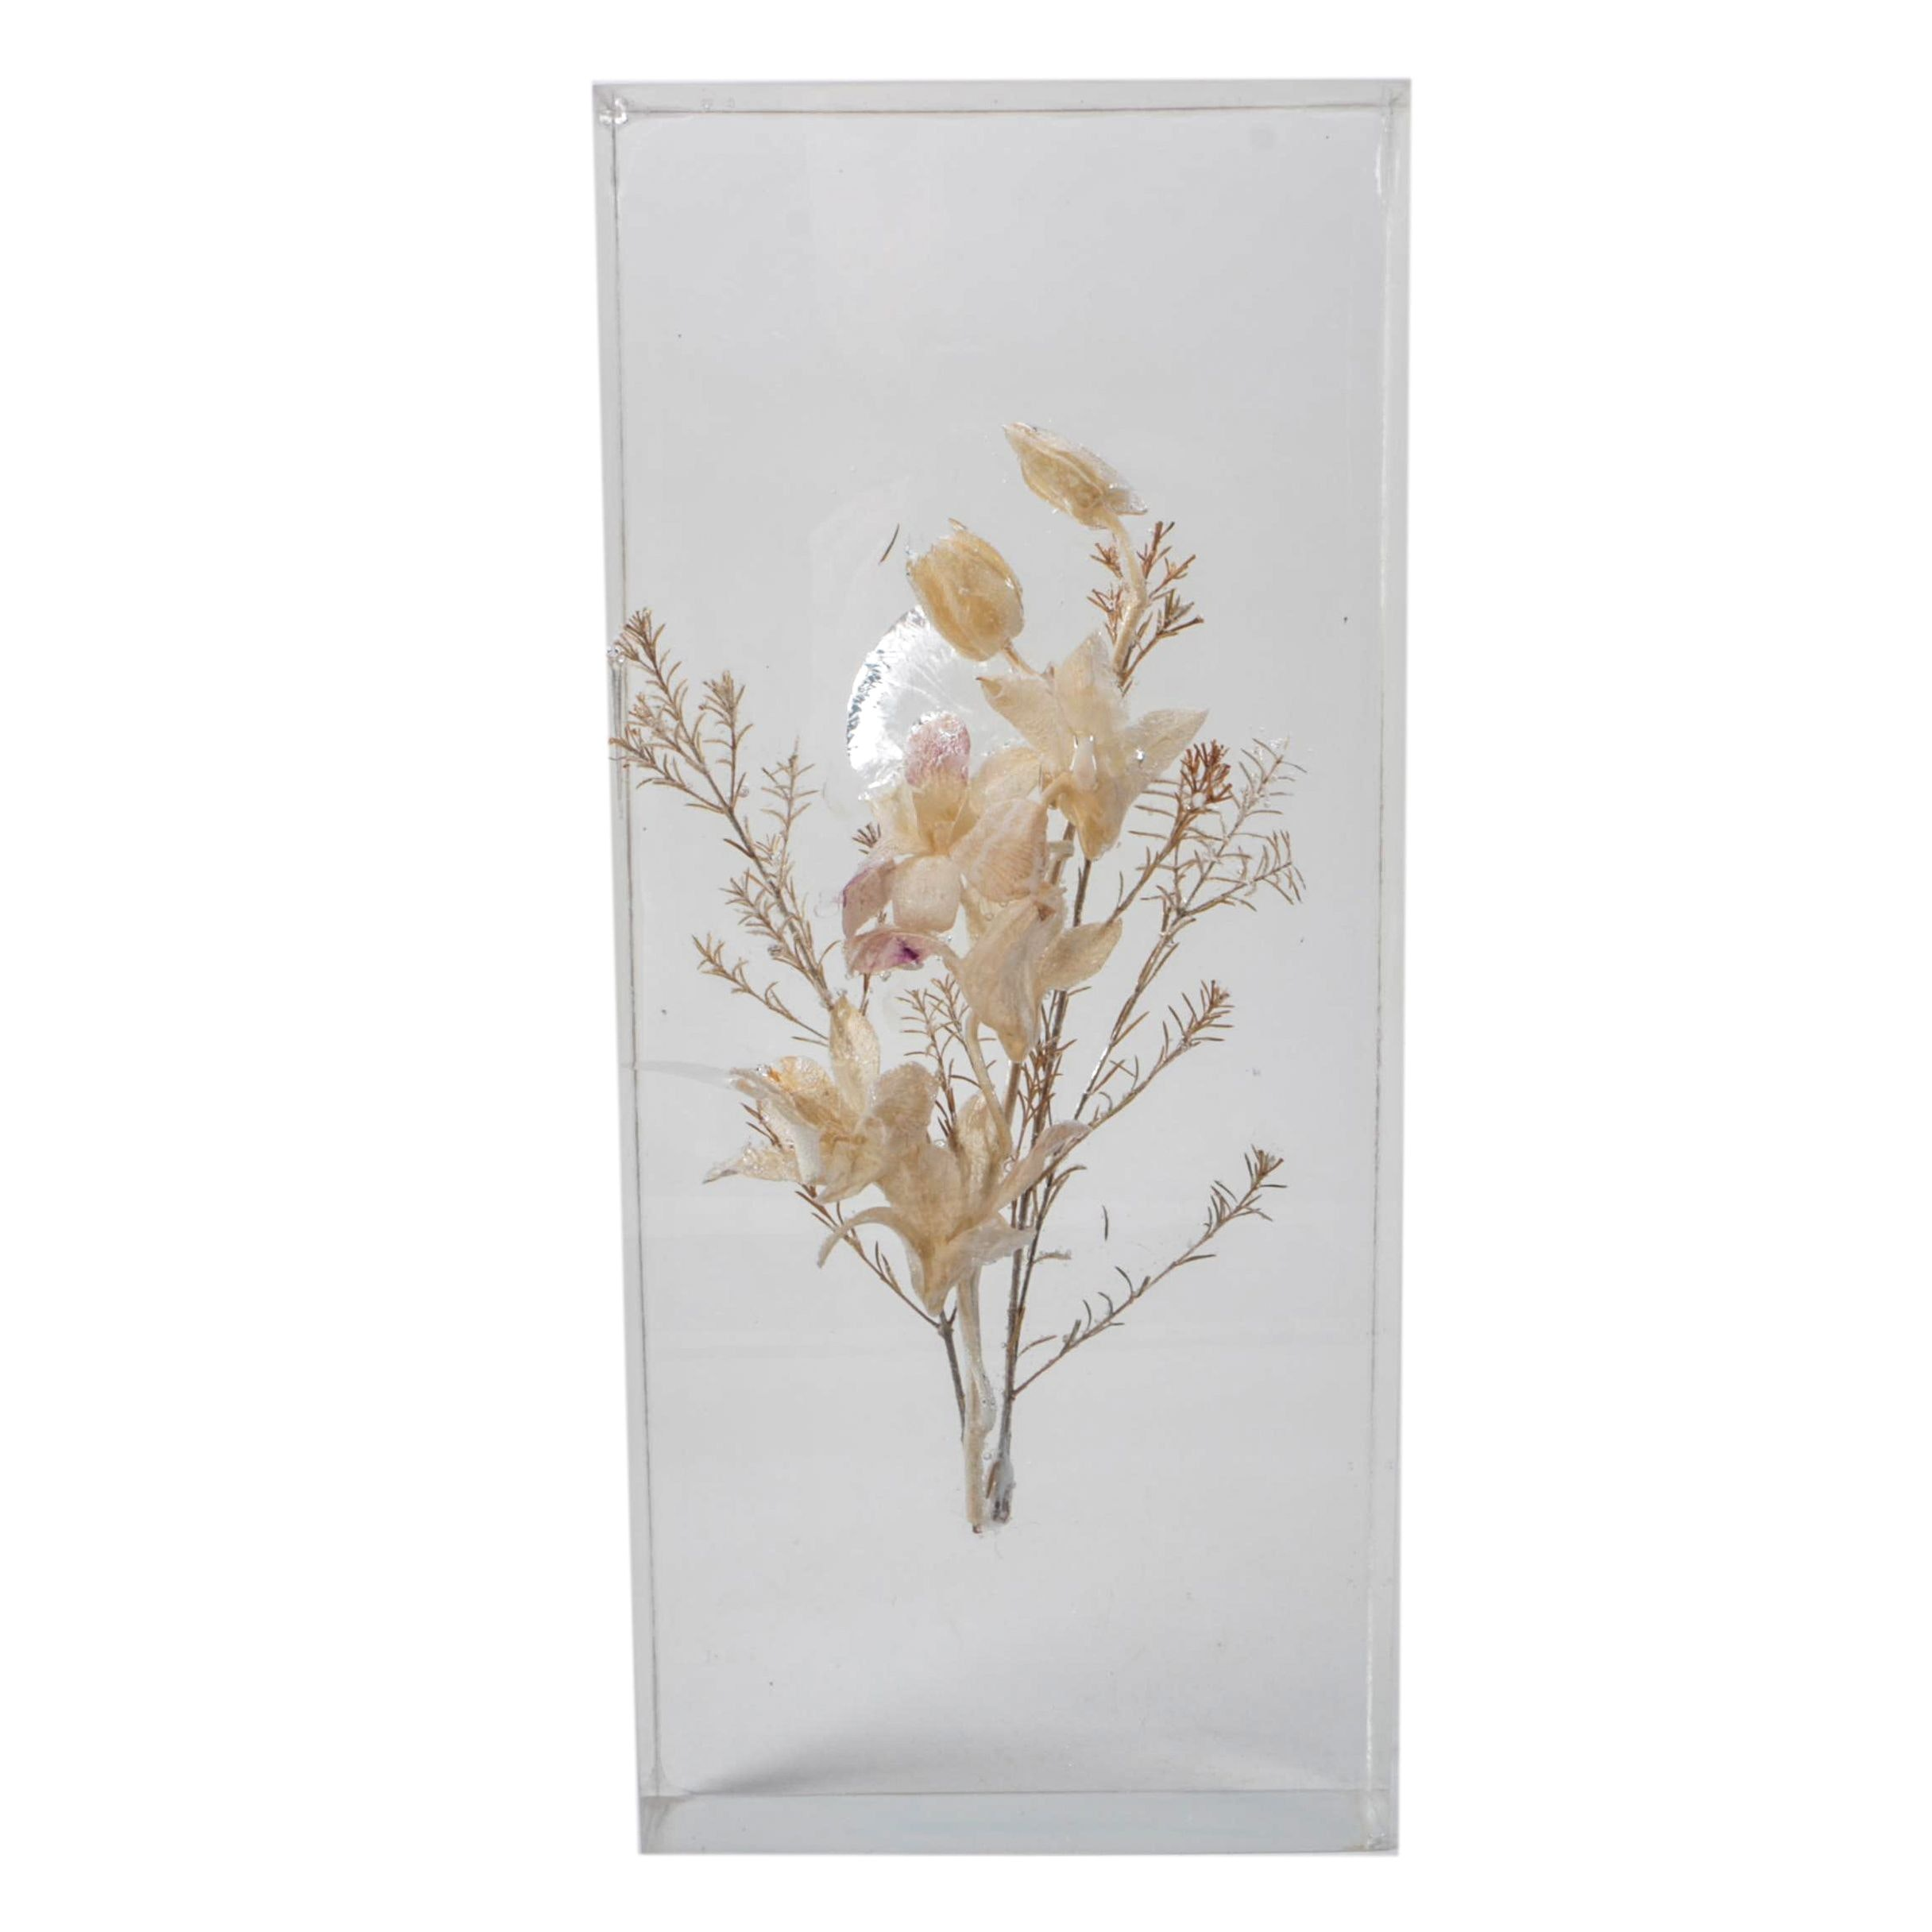 Preserved Blossoms Encased in Resin